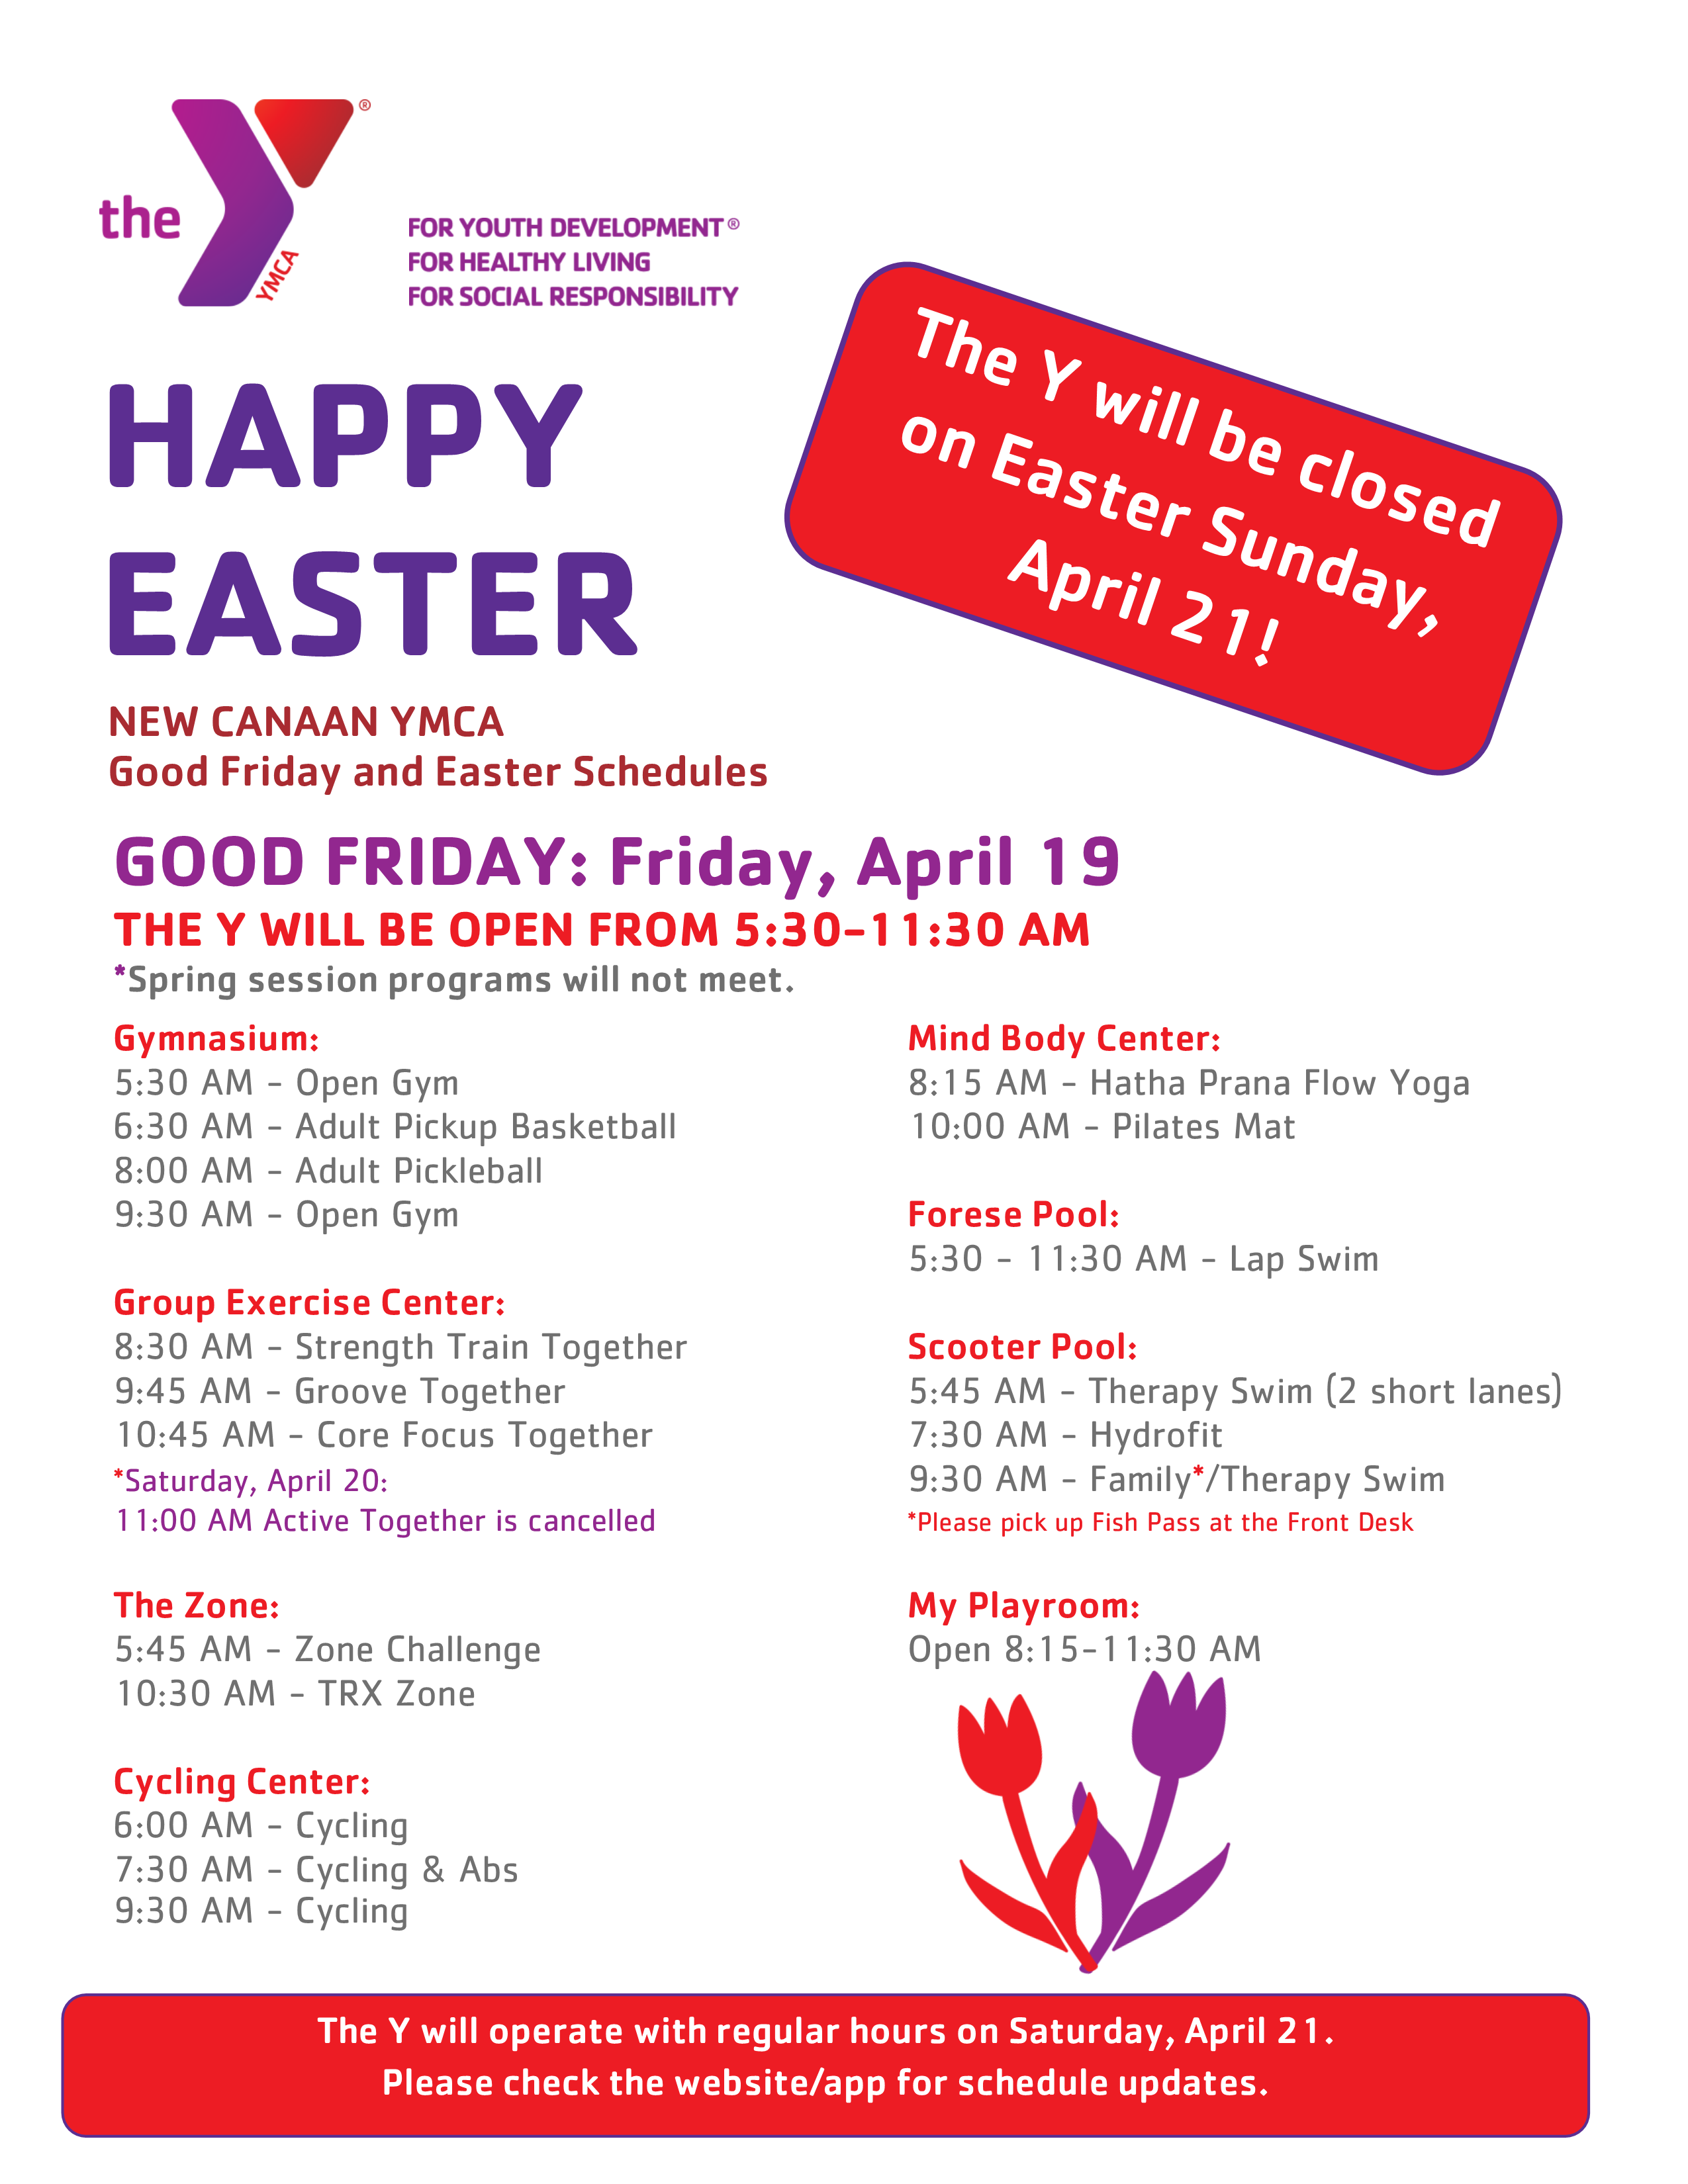 Good Friday Hours of Operation